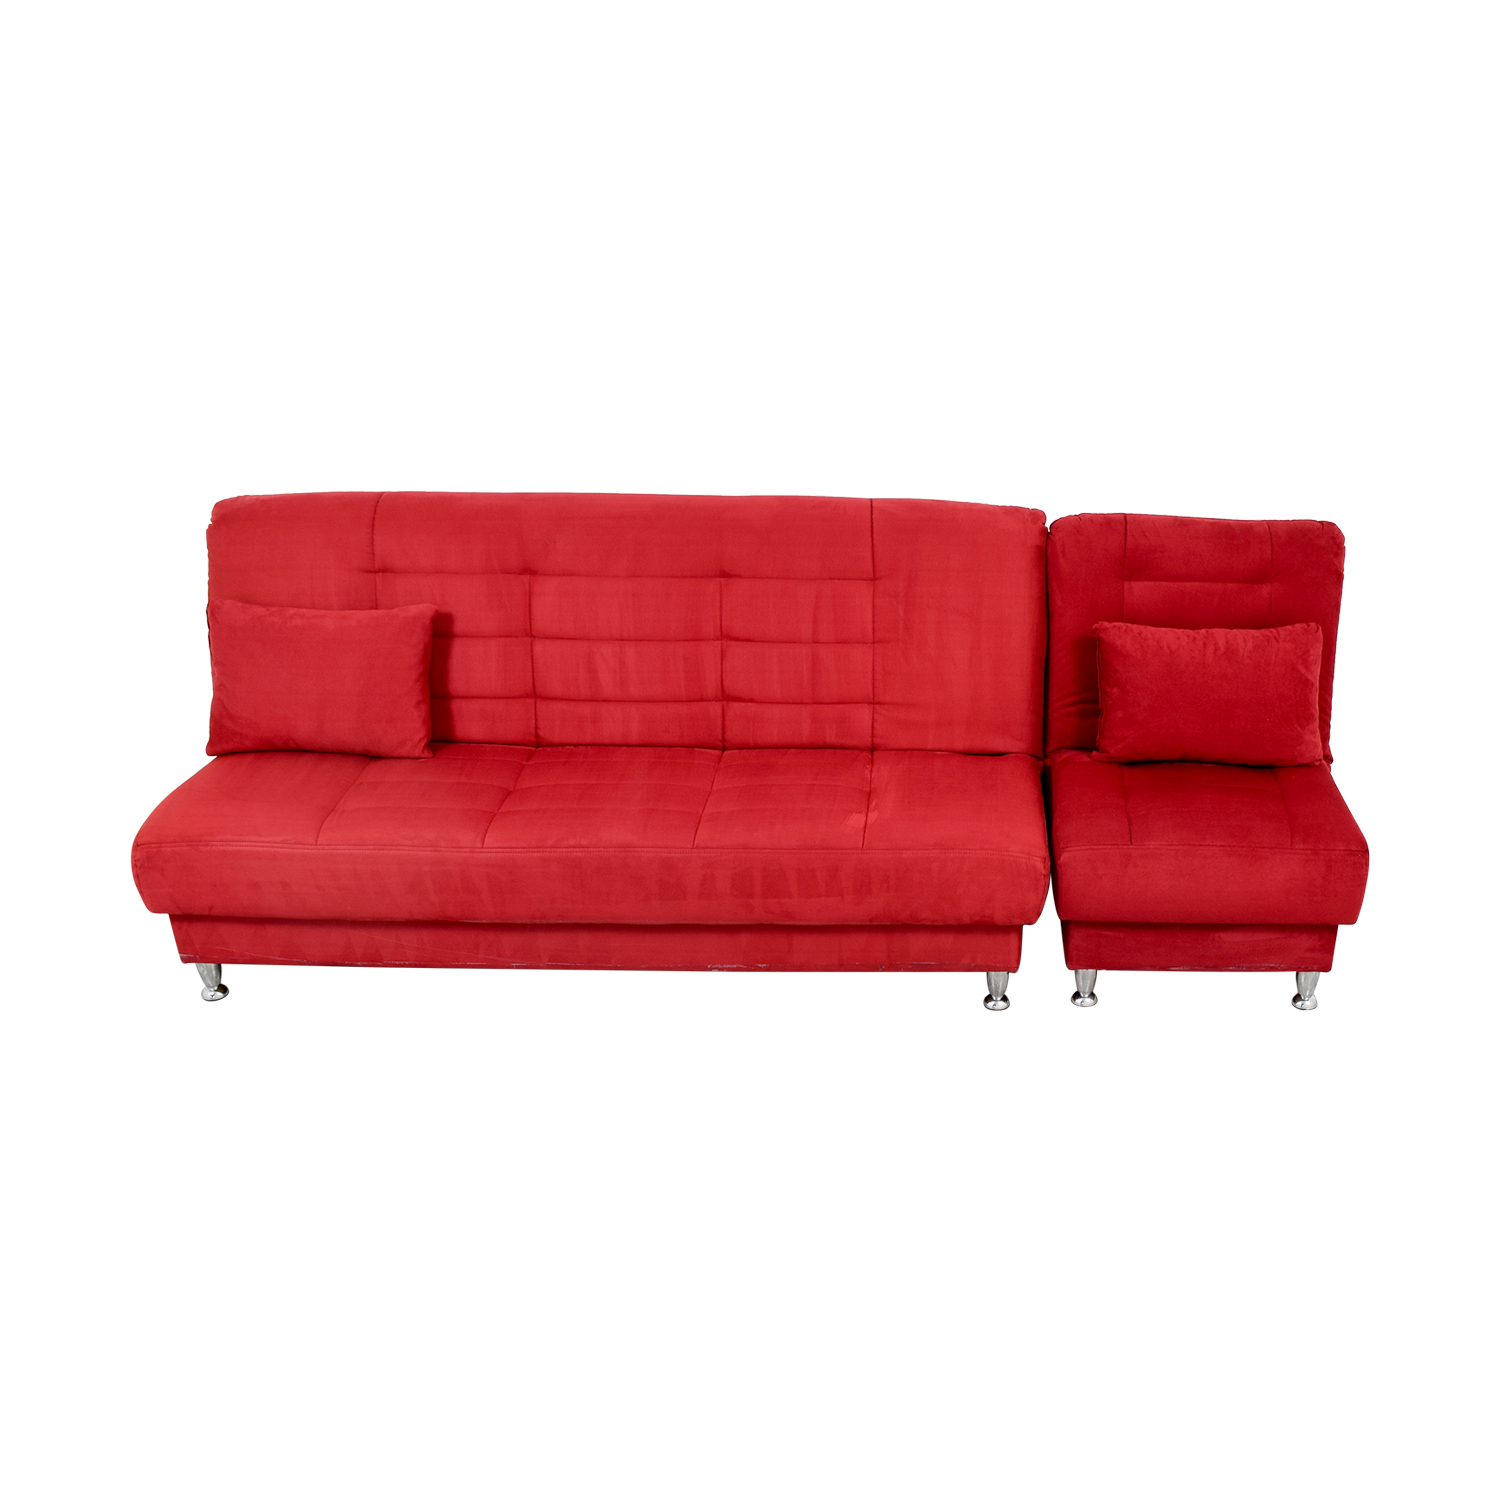 Red sofa chair gray scarlett tufted sofa set rouge red thesofa Red sofas and loveseats